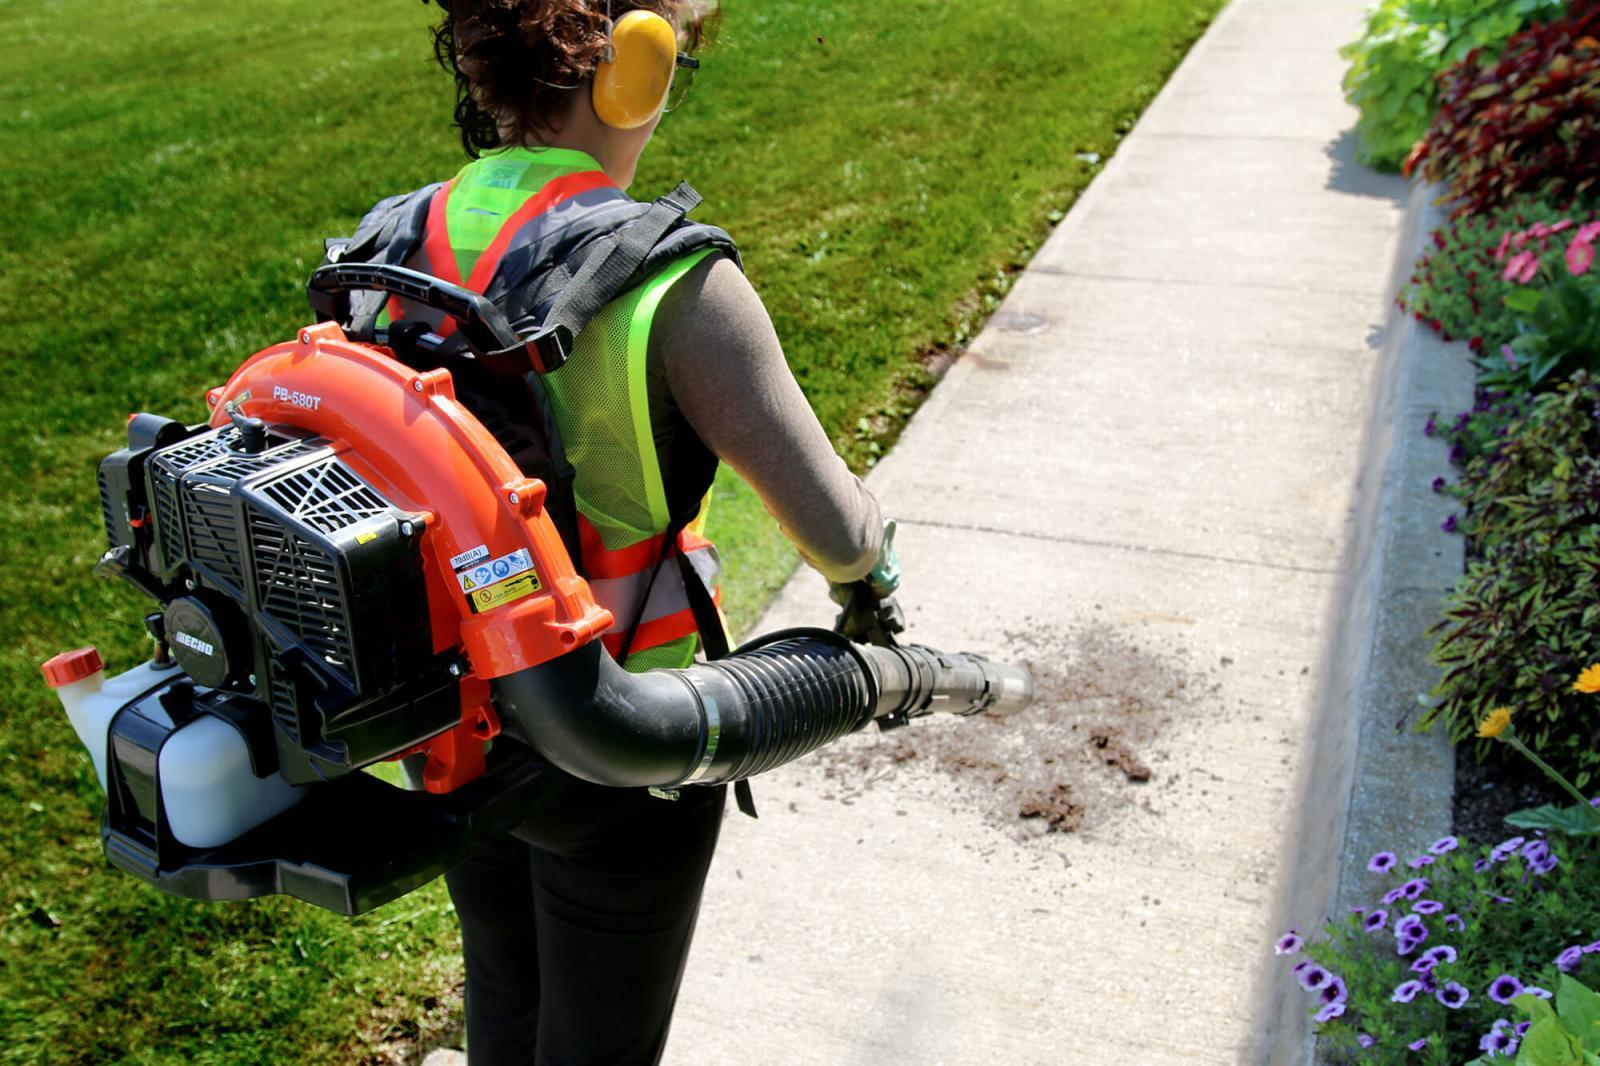 Free leaf blower training video